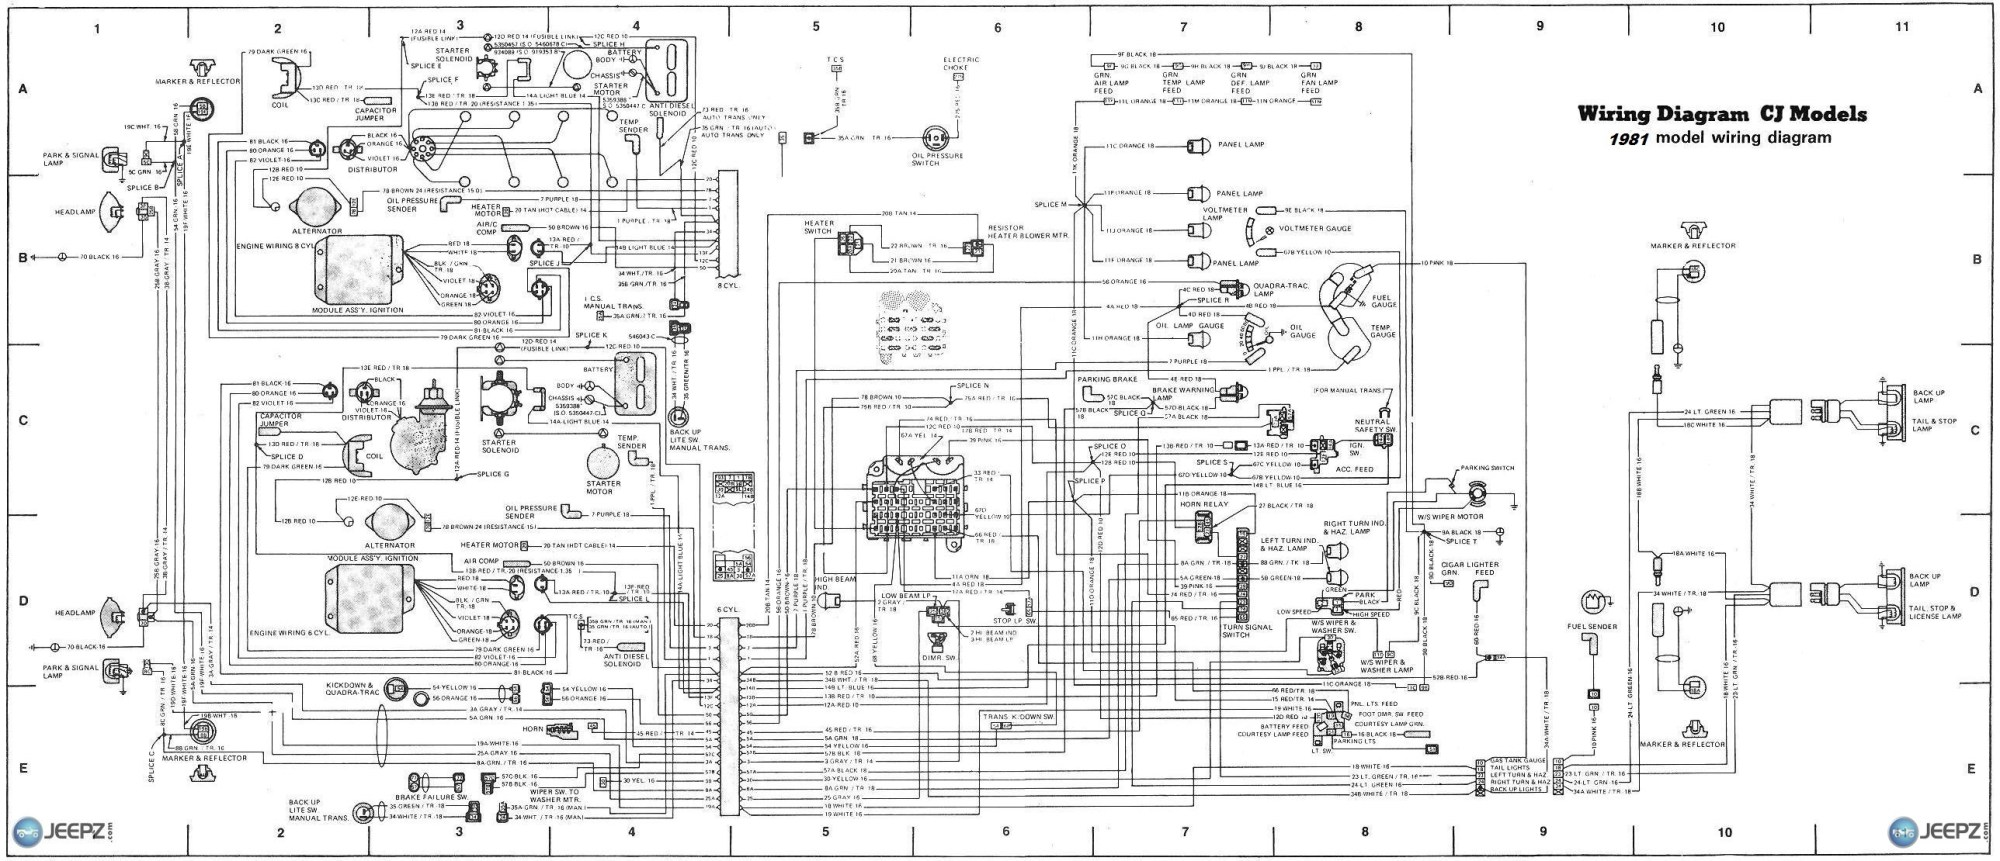 hight resolution of wiring diagram for 2009 jeep wrangler simple wiring diagram jeep wrangler fenders 2001 jeep wrangler signal